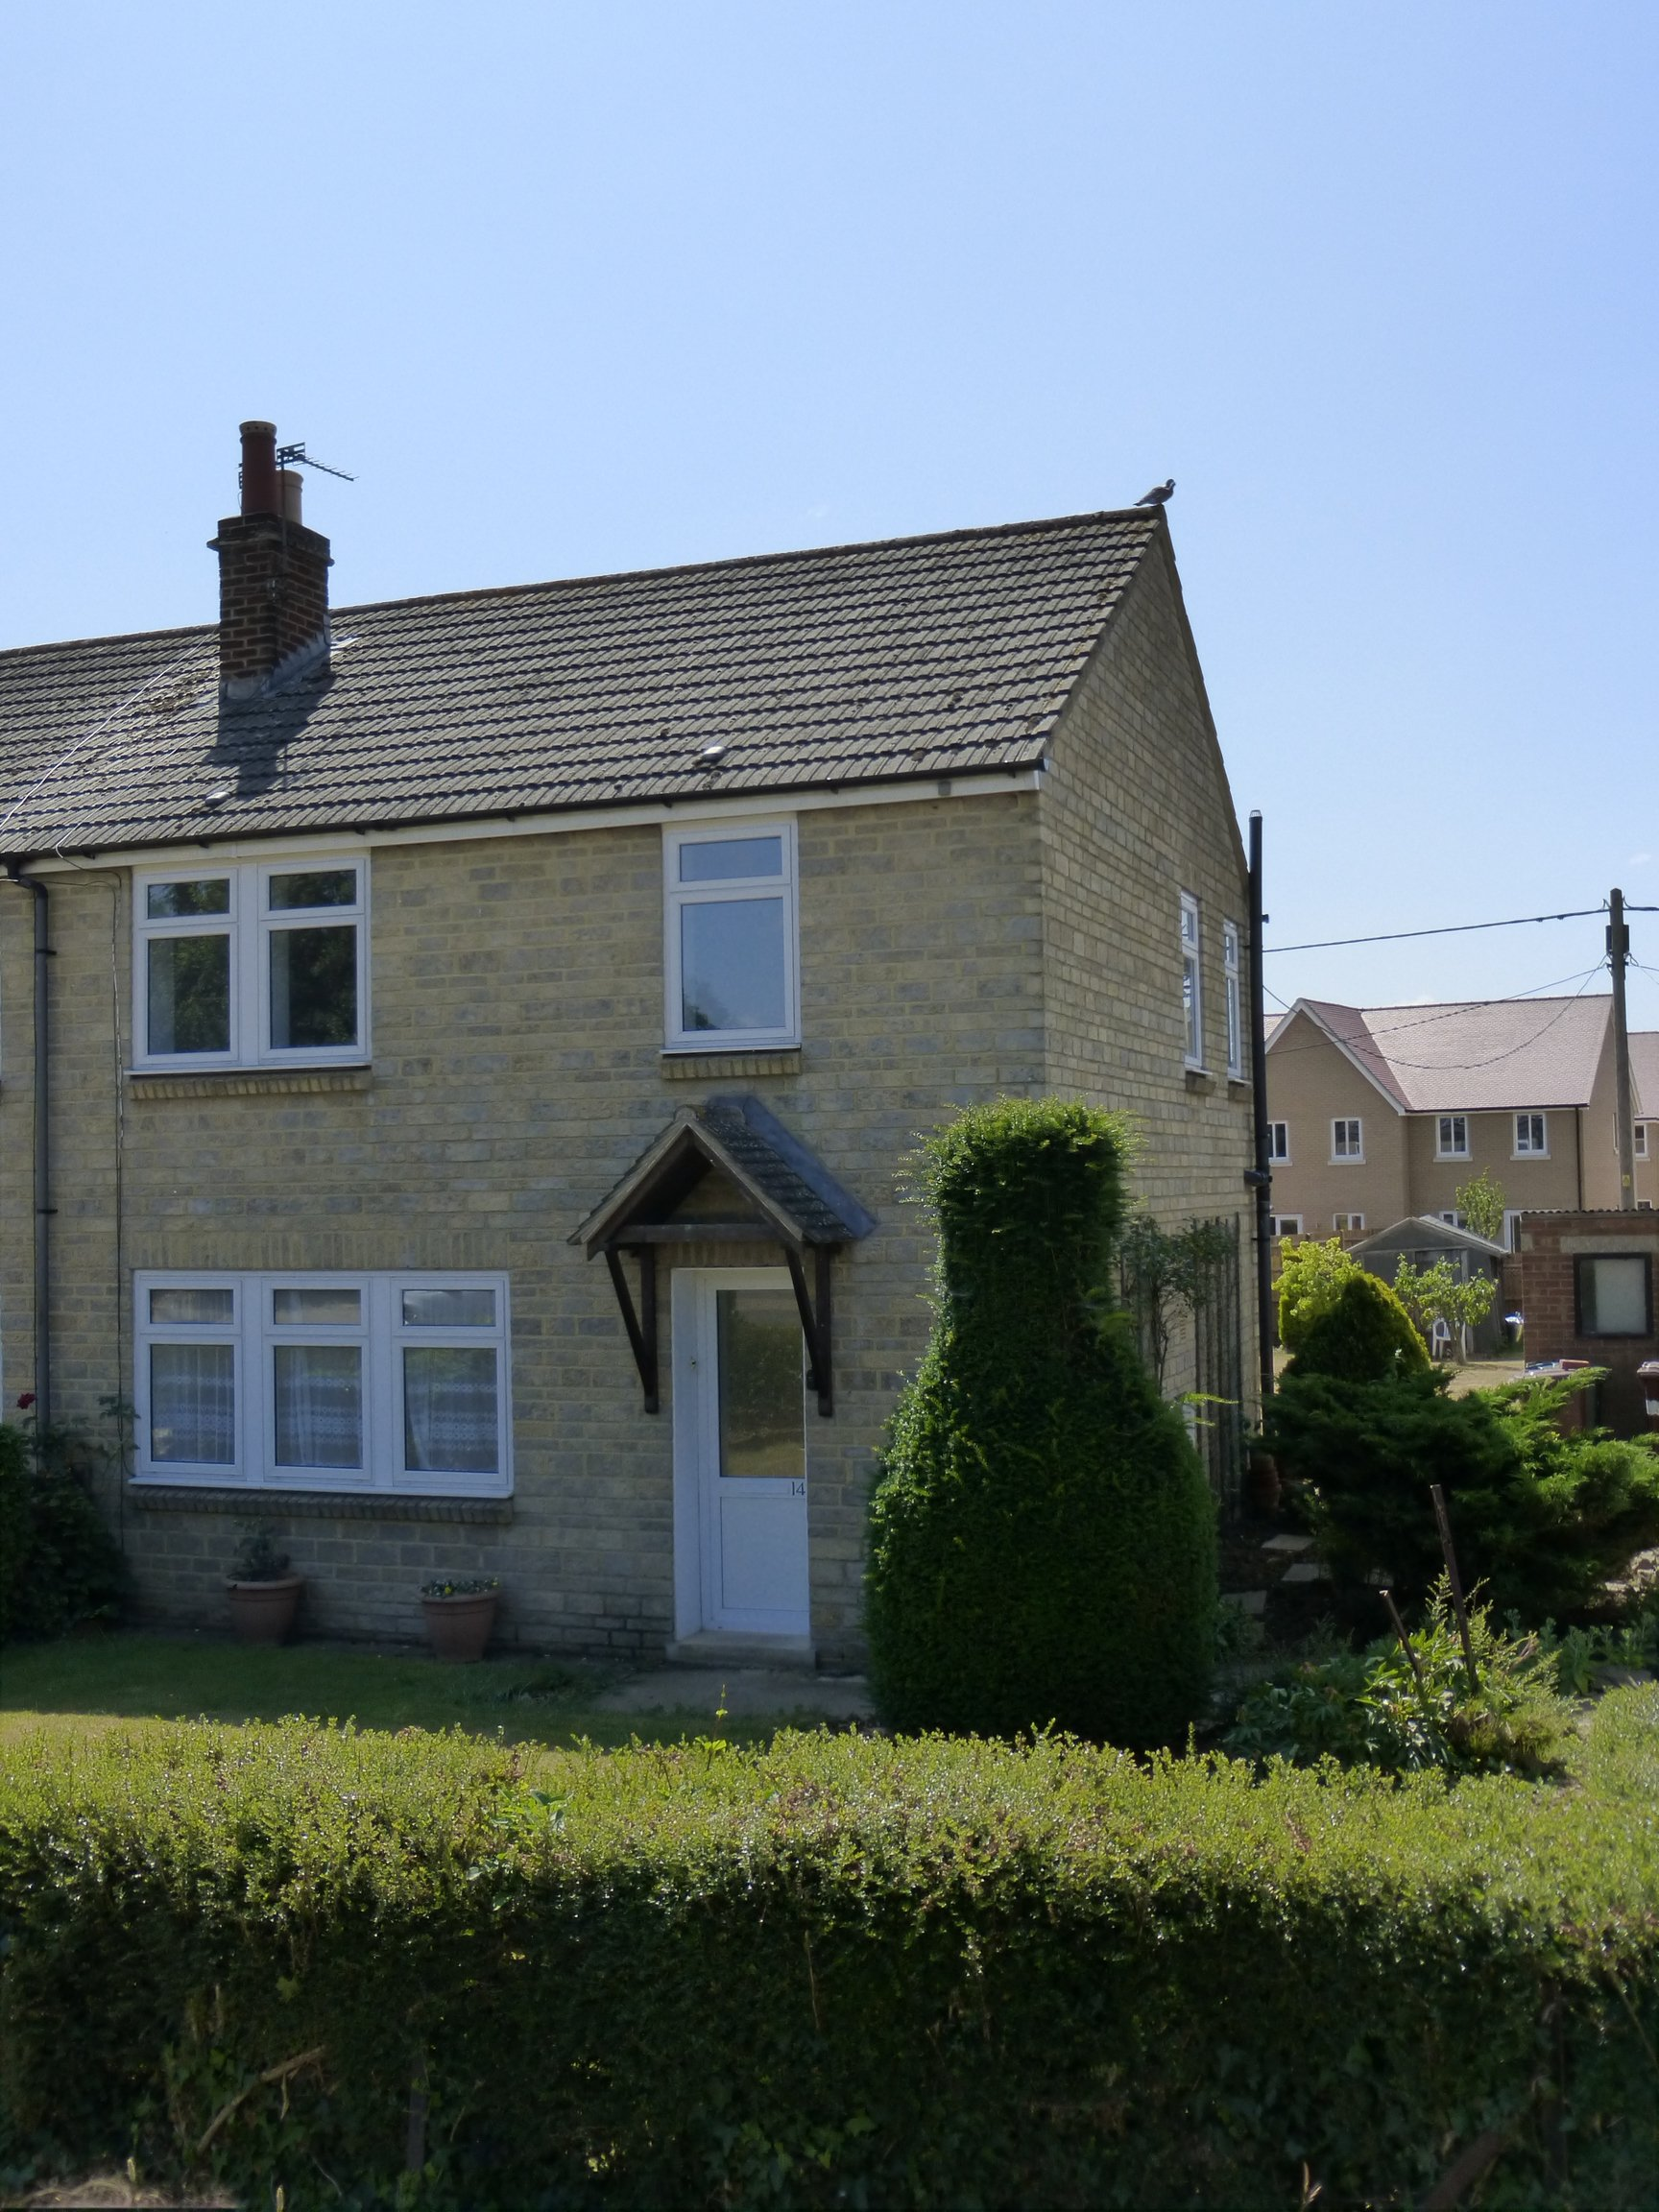 3 Bed House - End of Terrace to Rent - The Green, Bicester, OX26 1UU